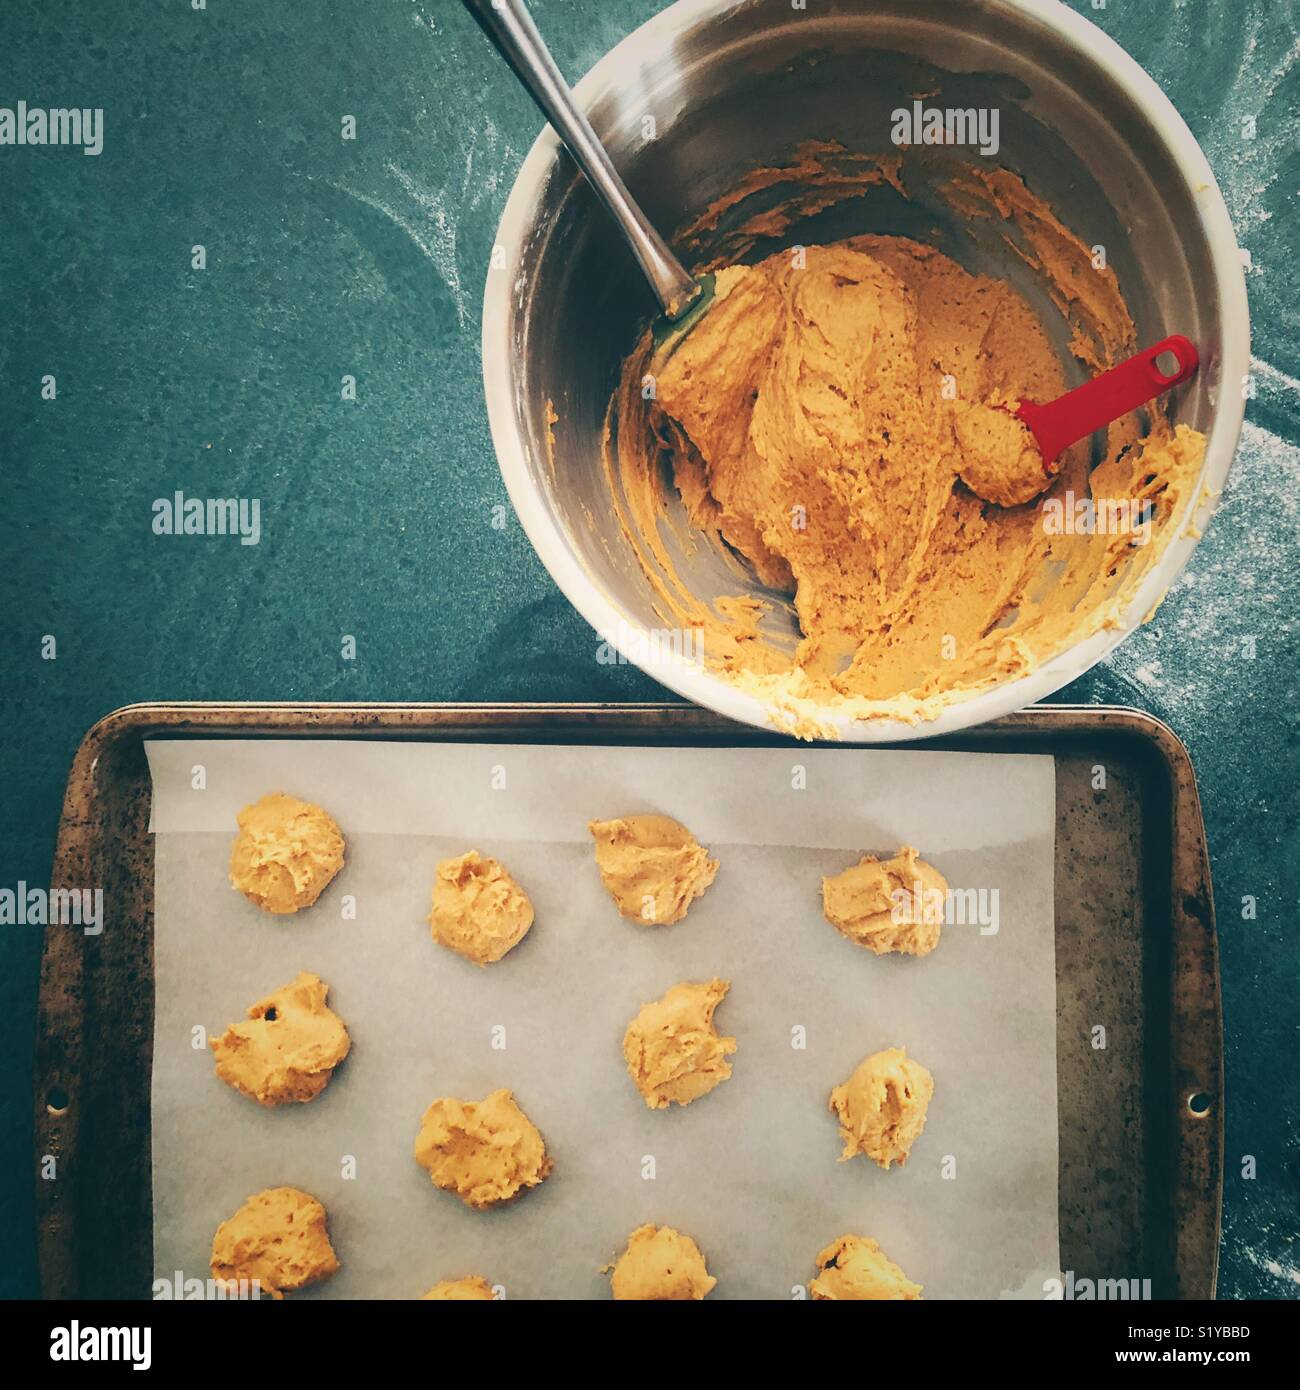 Making pumpkin cookies flat view showing stainless steel mixing bowl full of cookie batter and parchment paper lined - Stock Image